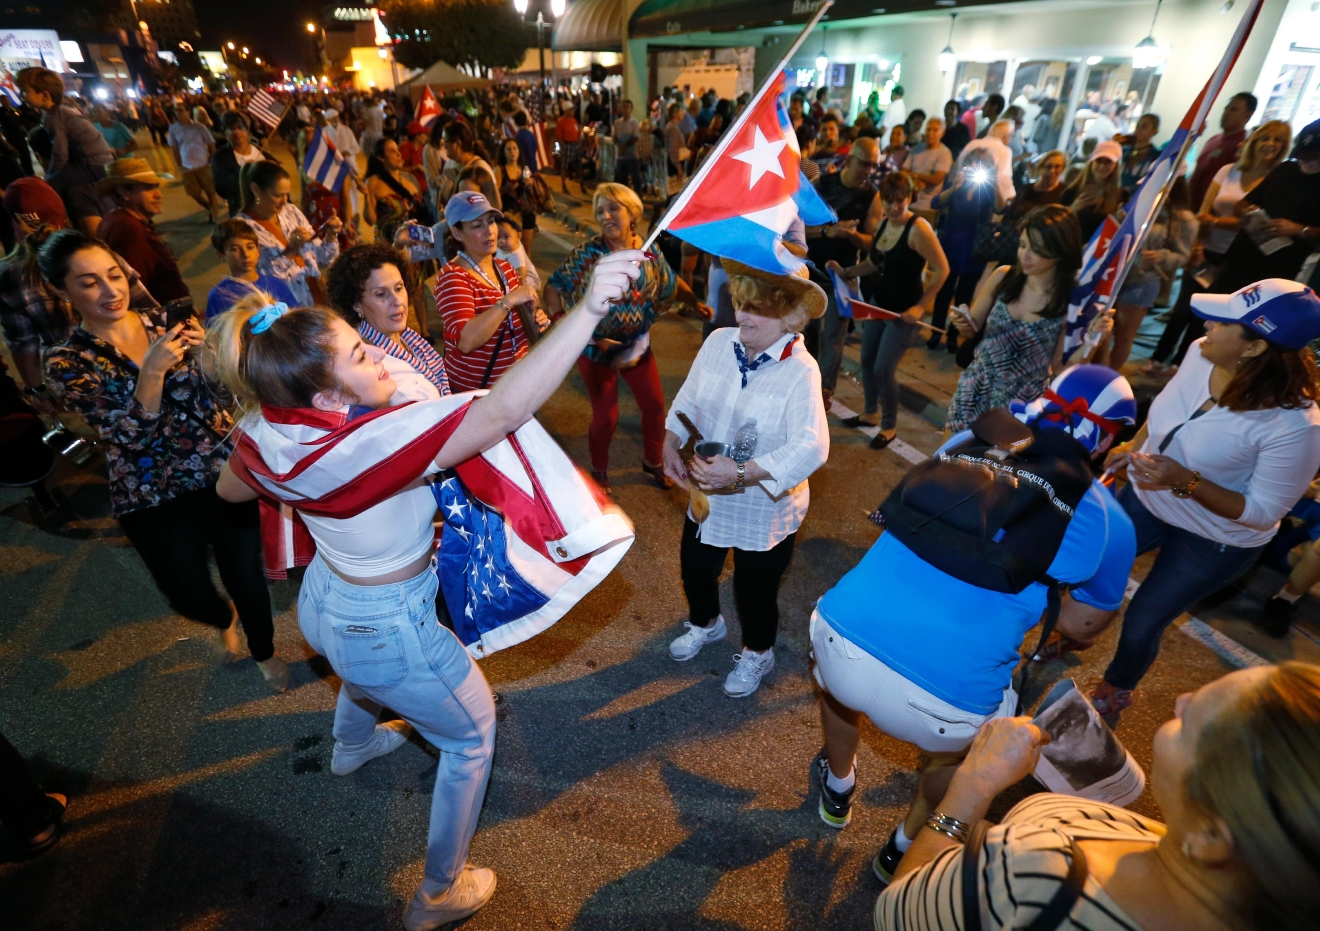 FILE- In this Nov. 26, 2016, file photo, members of the Cuban community dance in the street as they react to the death of Fidel Castro in front of the Versailles Restaurant in the Little Havana neighborhood of Miami. (AP Photo/Wilfredo Lee, File)